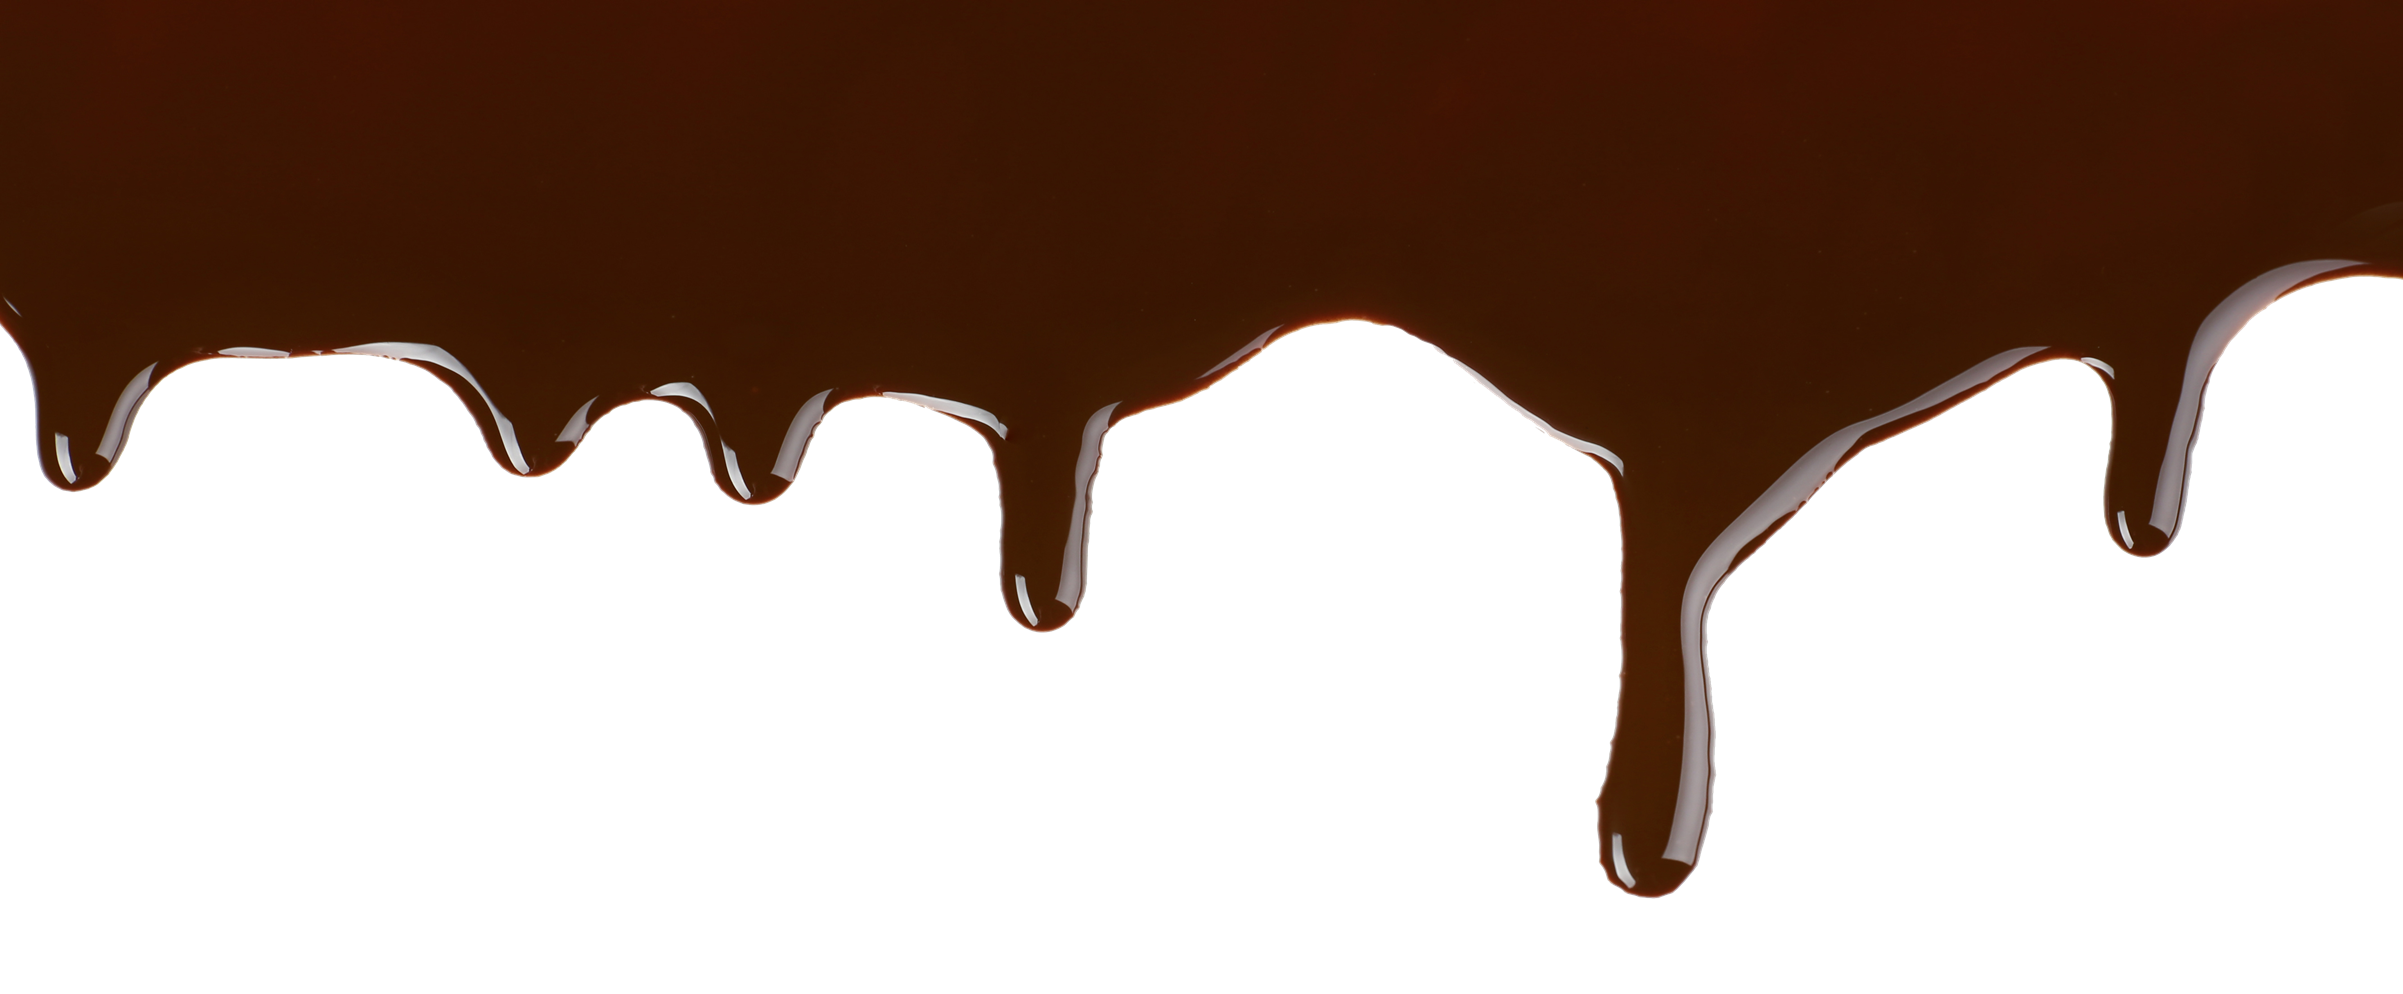 Chocolate PNG - 20242